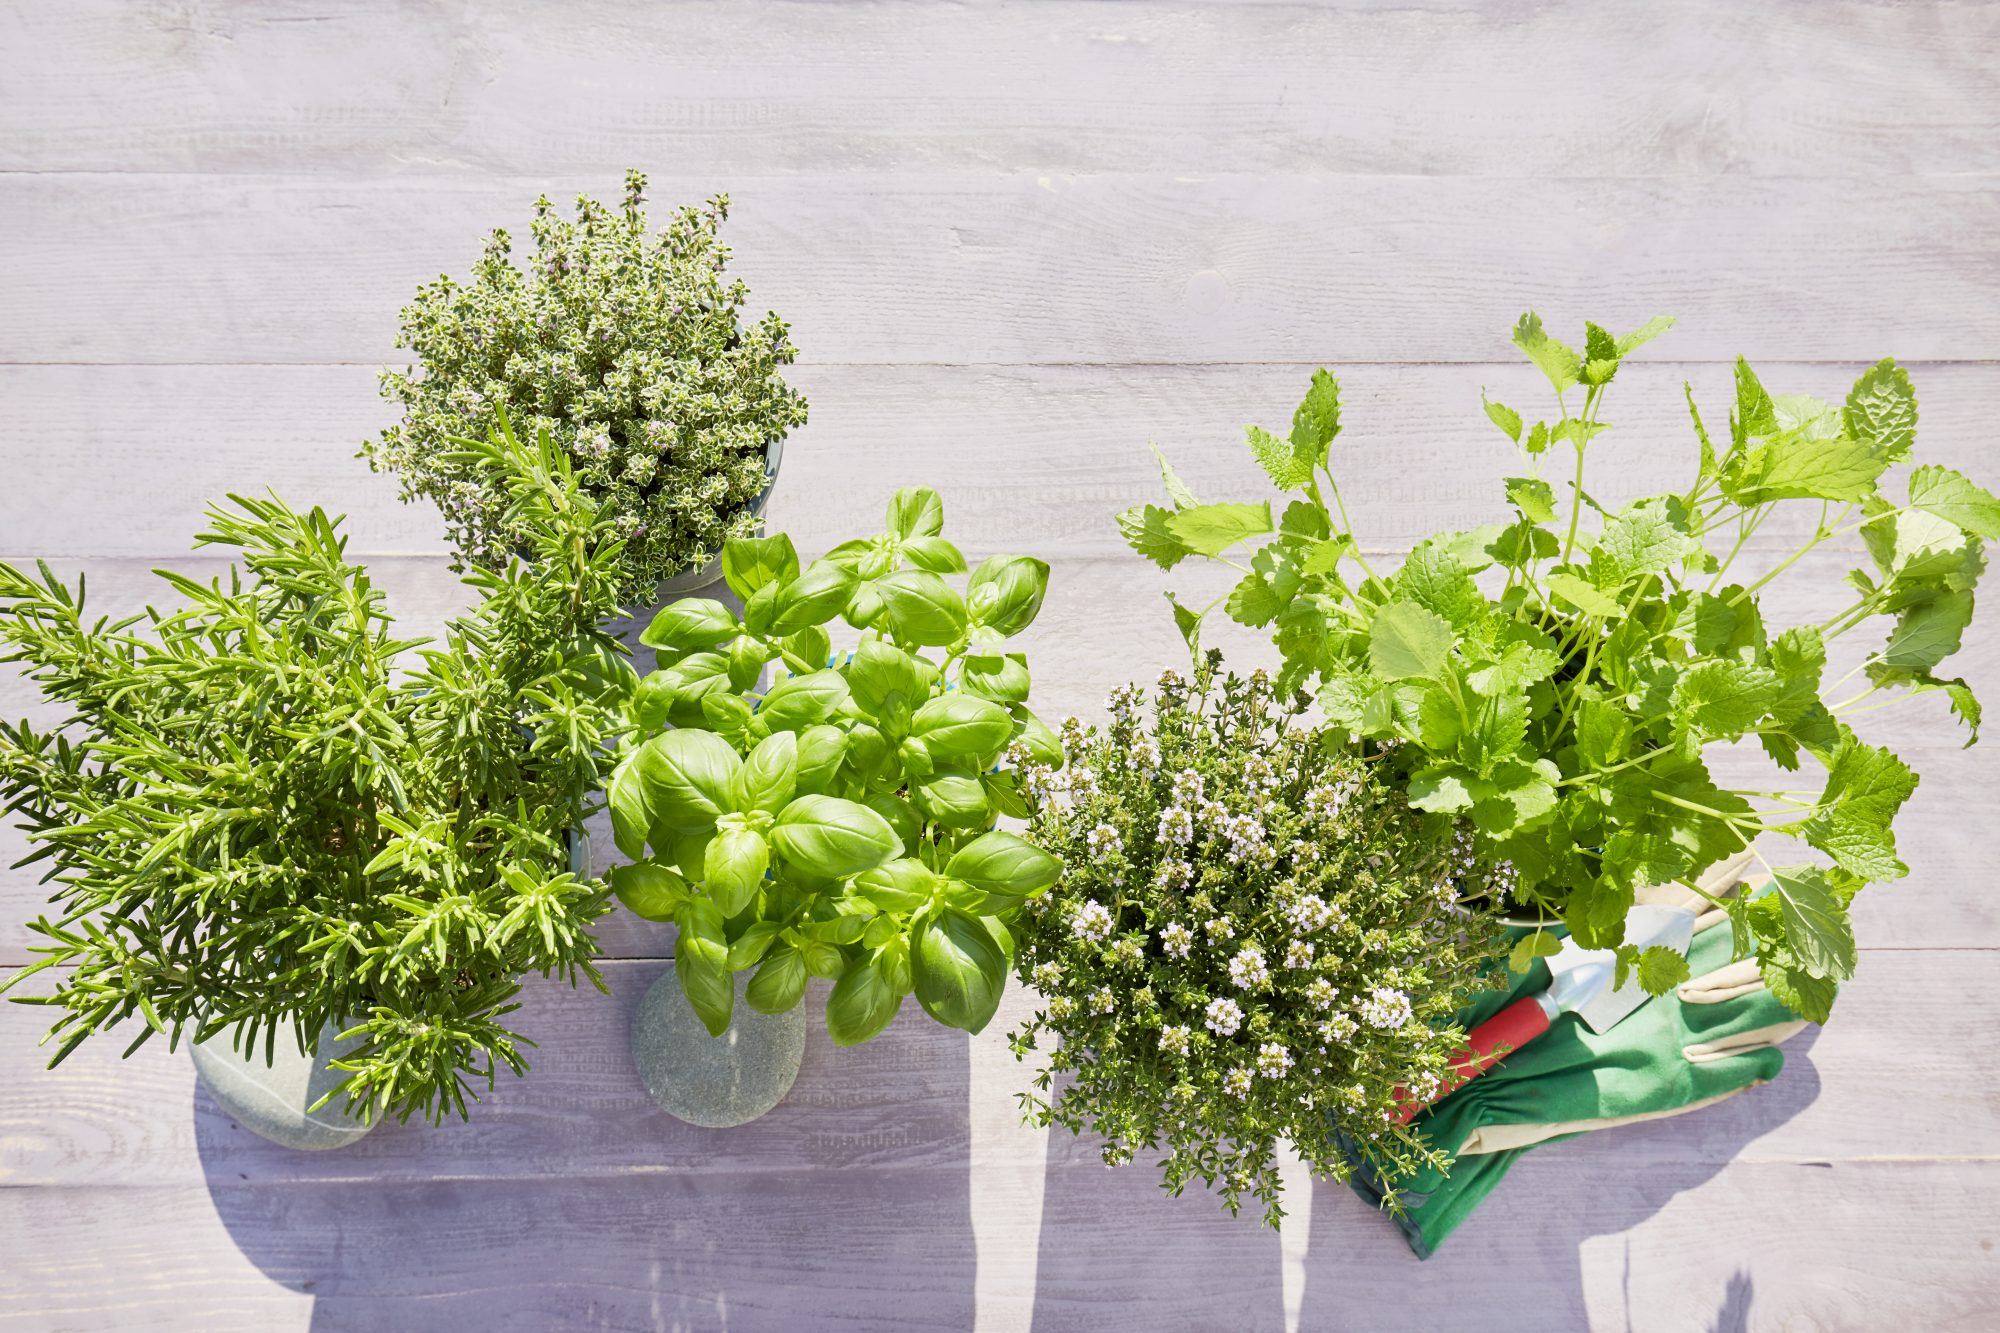 Still life of potted fresh herbs, shovel and garden gloves on wooden background in summer